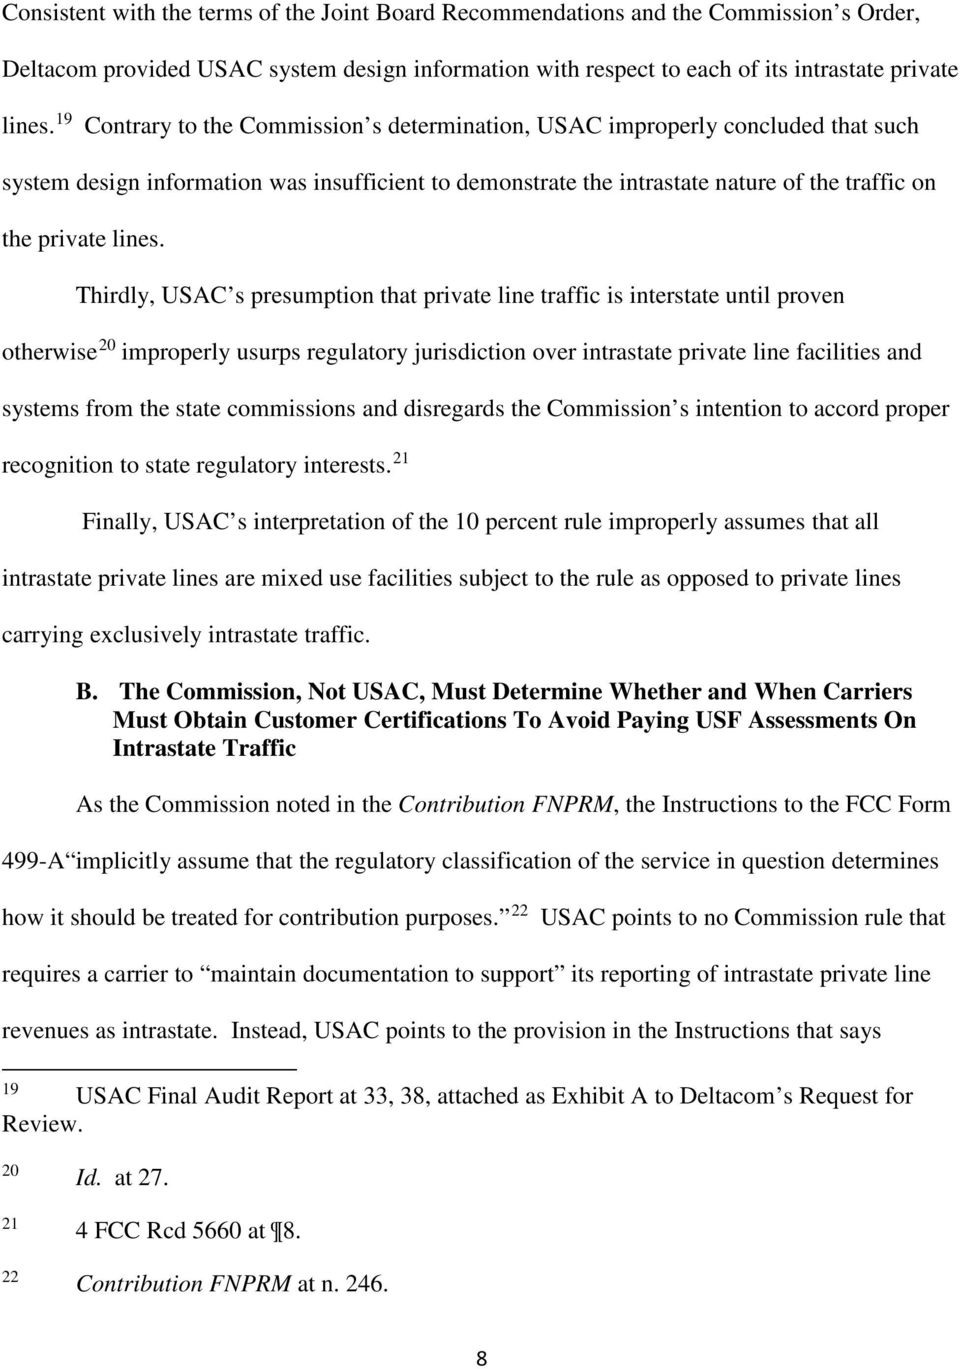 Thirdly, USAC s presumption that private line traffic is interstate until proven otherwise 20 improperly usurps regulatory jurisdiction over intrastate private line facilities and systems from the